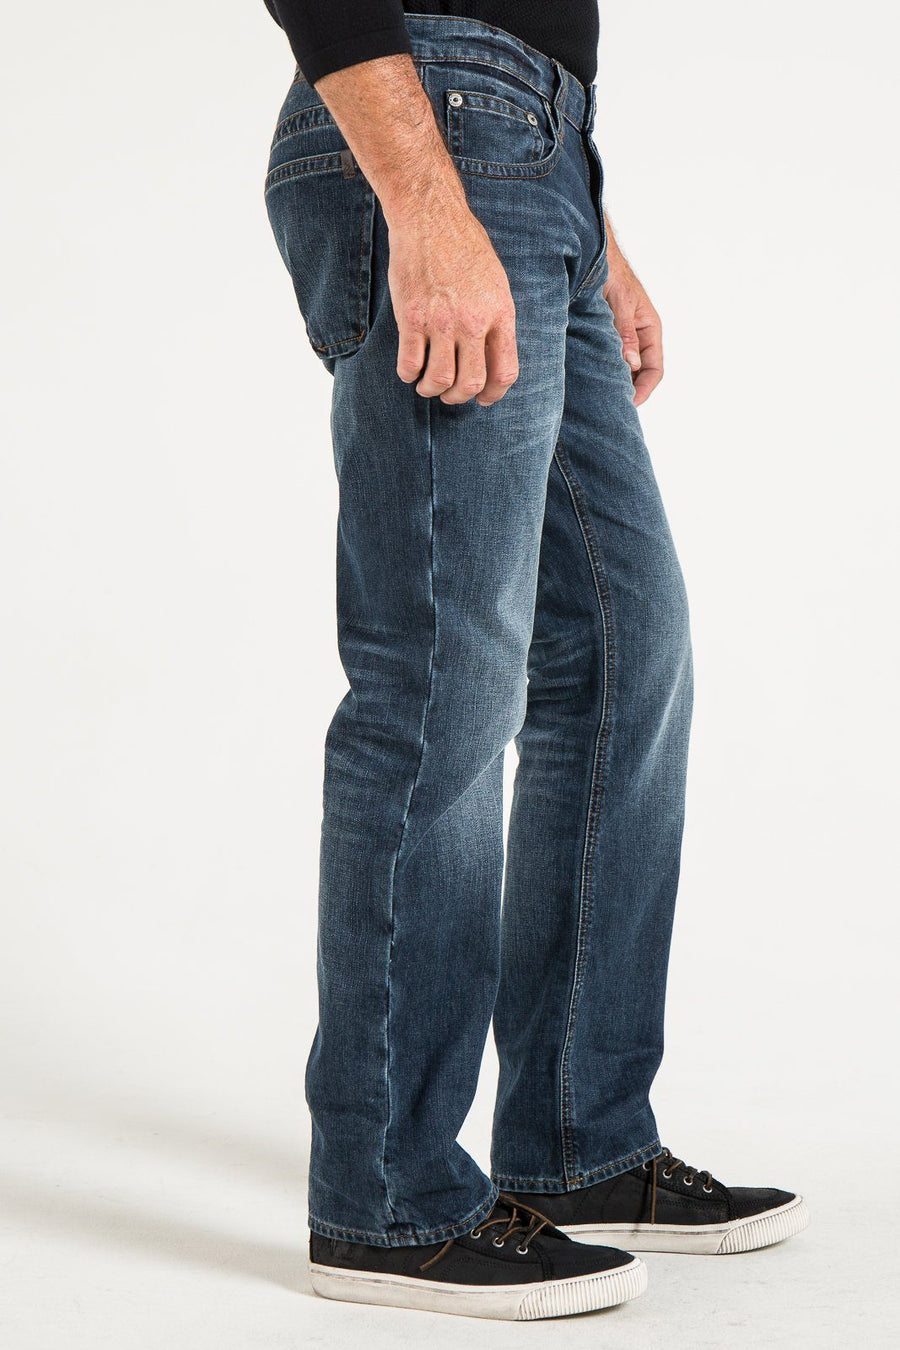 TEXAS STRAIGHT IN STATESIDE DENIM